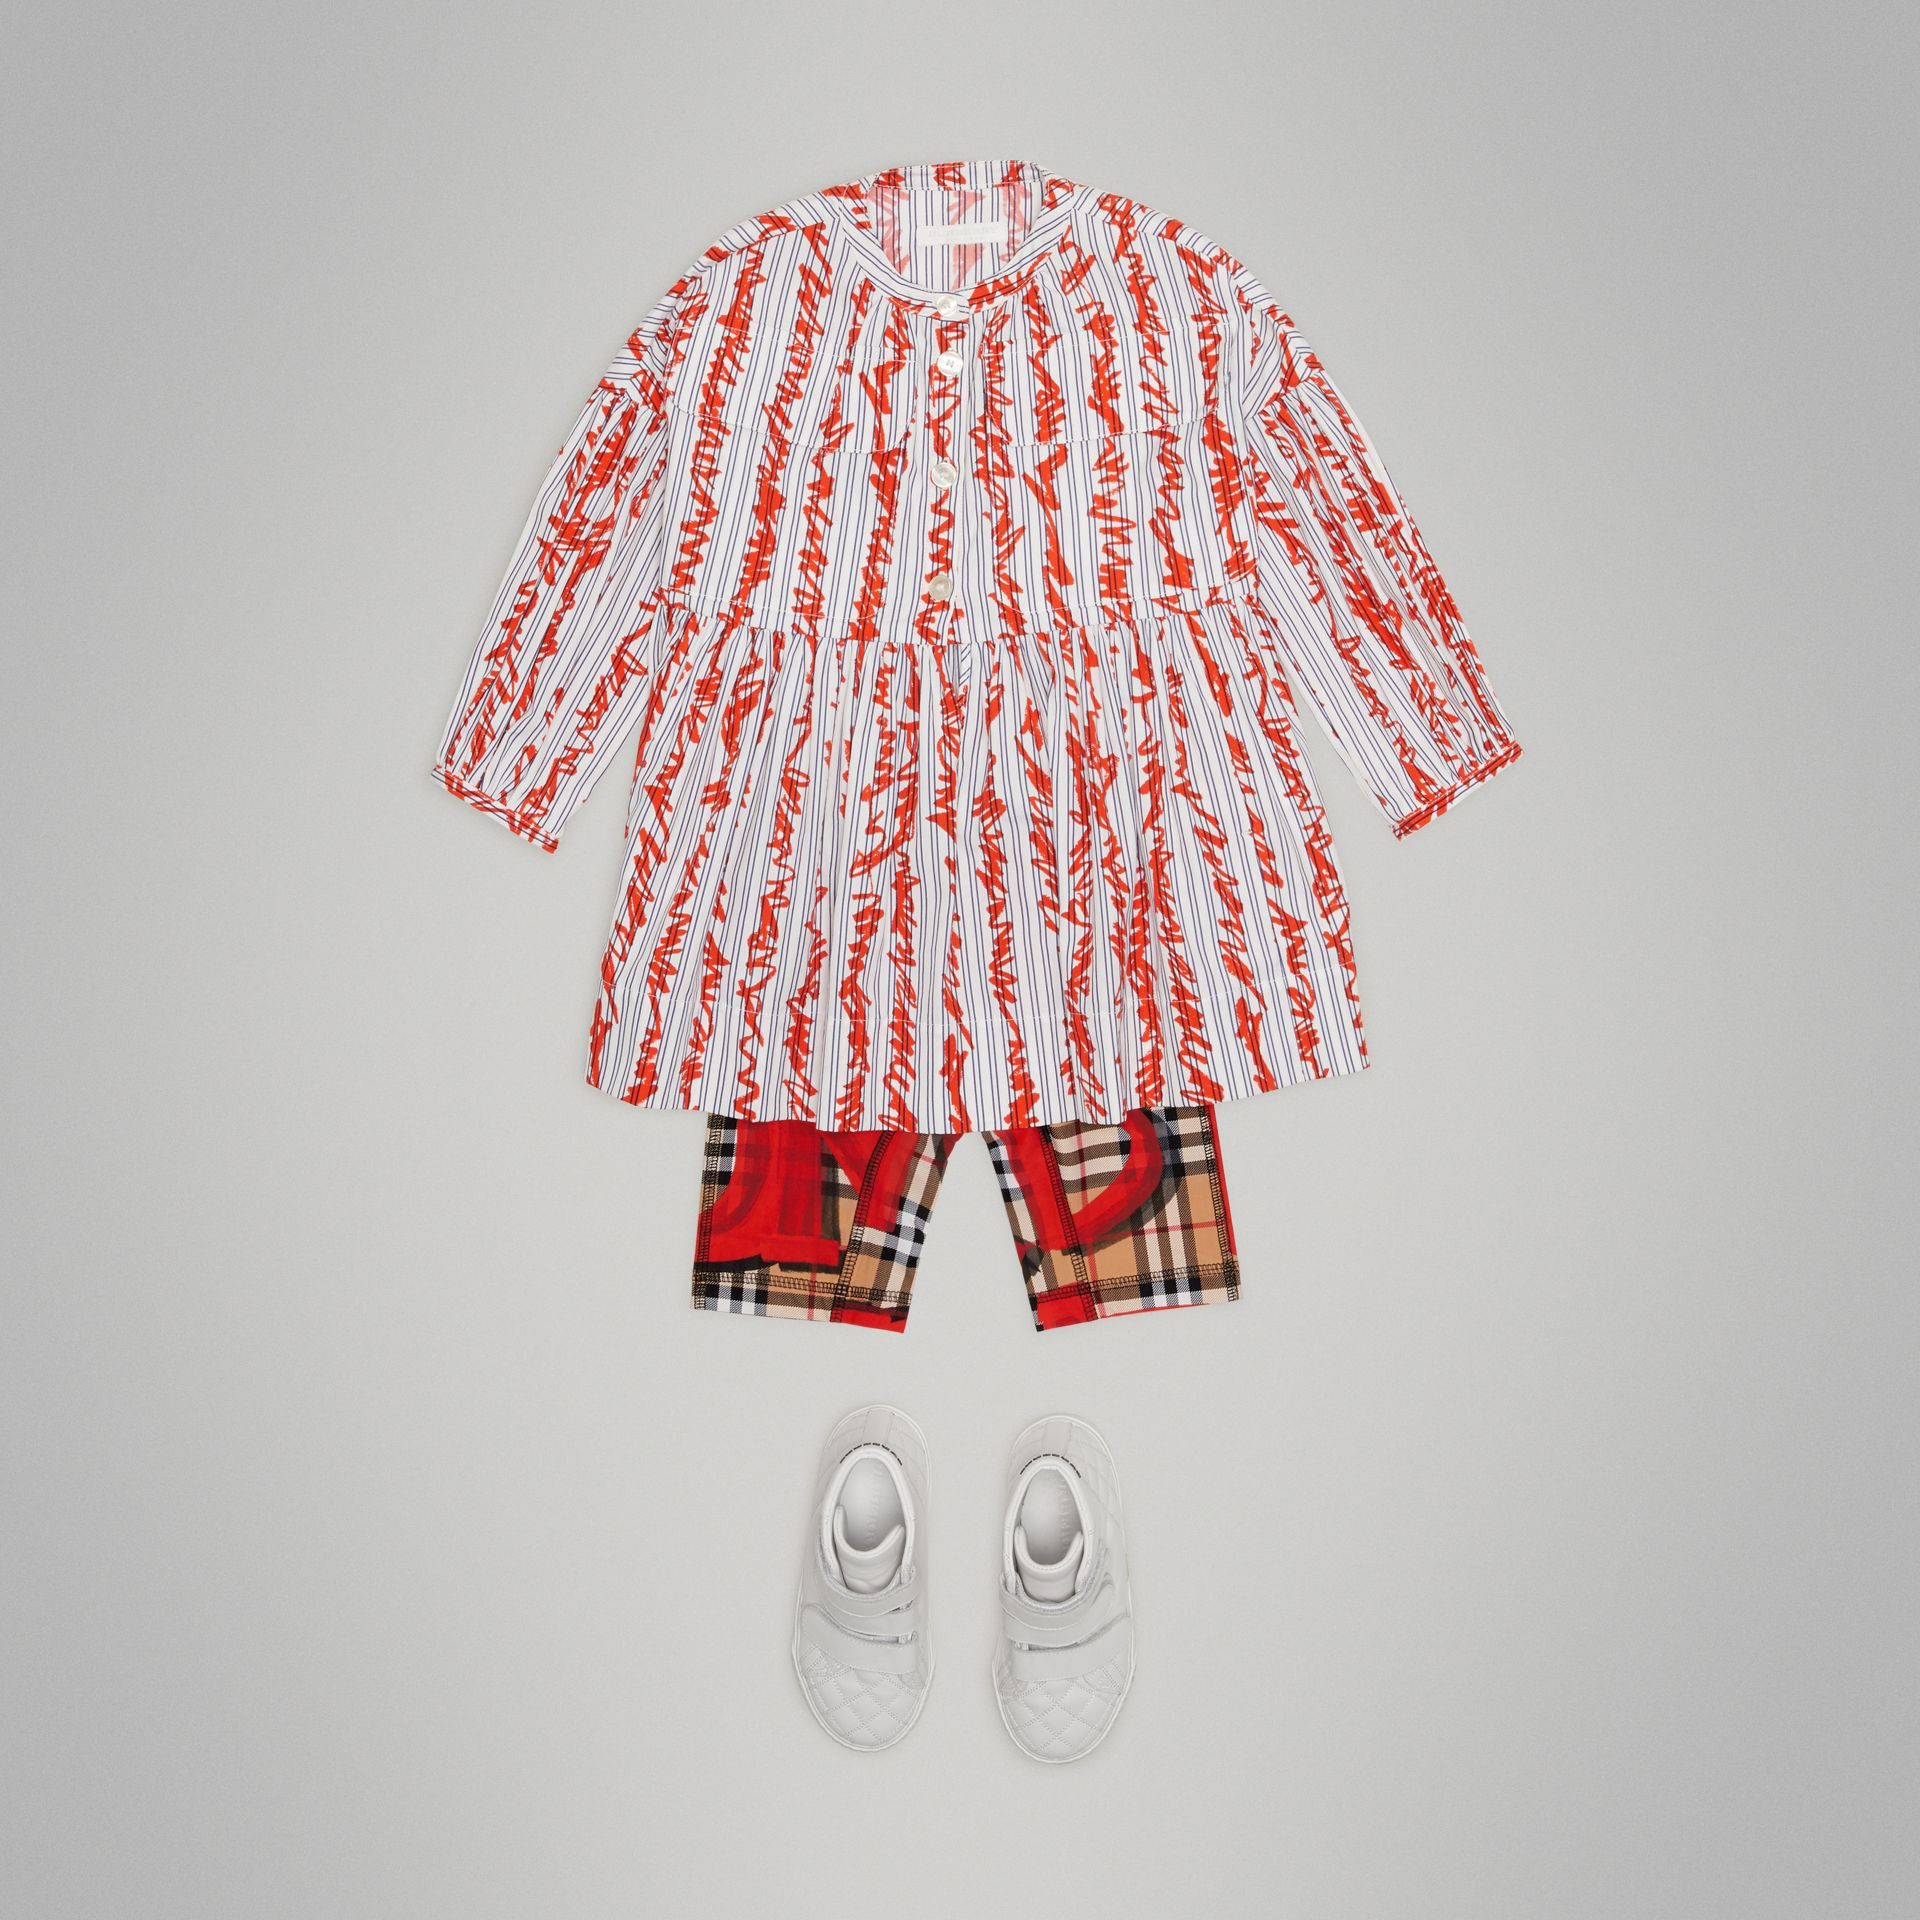 Graffiti Print Vintage Check Stretch Jersey Shorts in Bright Red | Burberry Singapore - gallery image 2